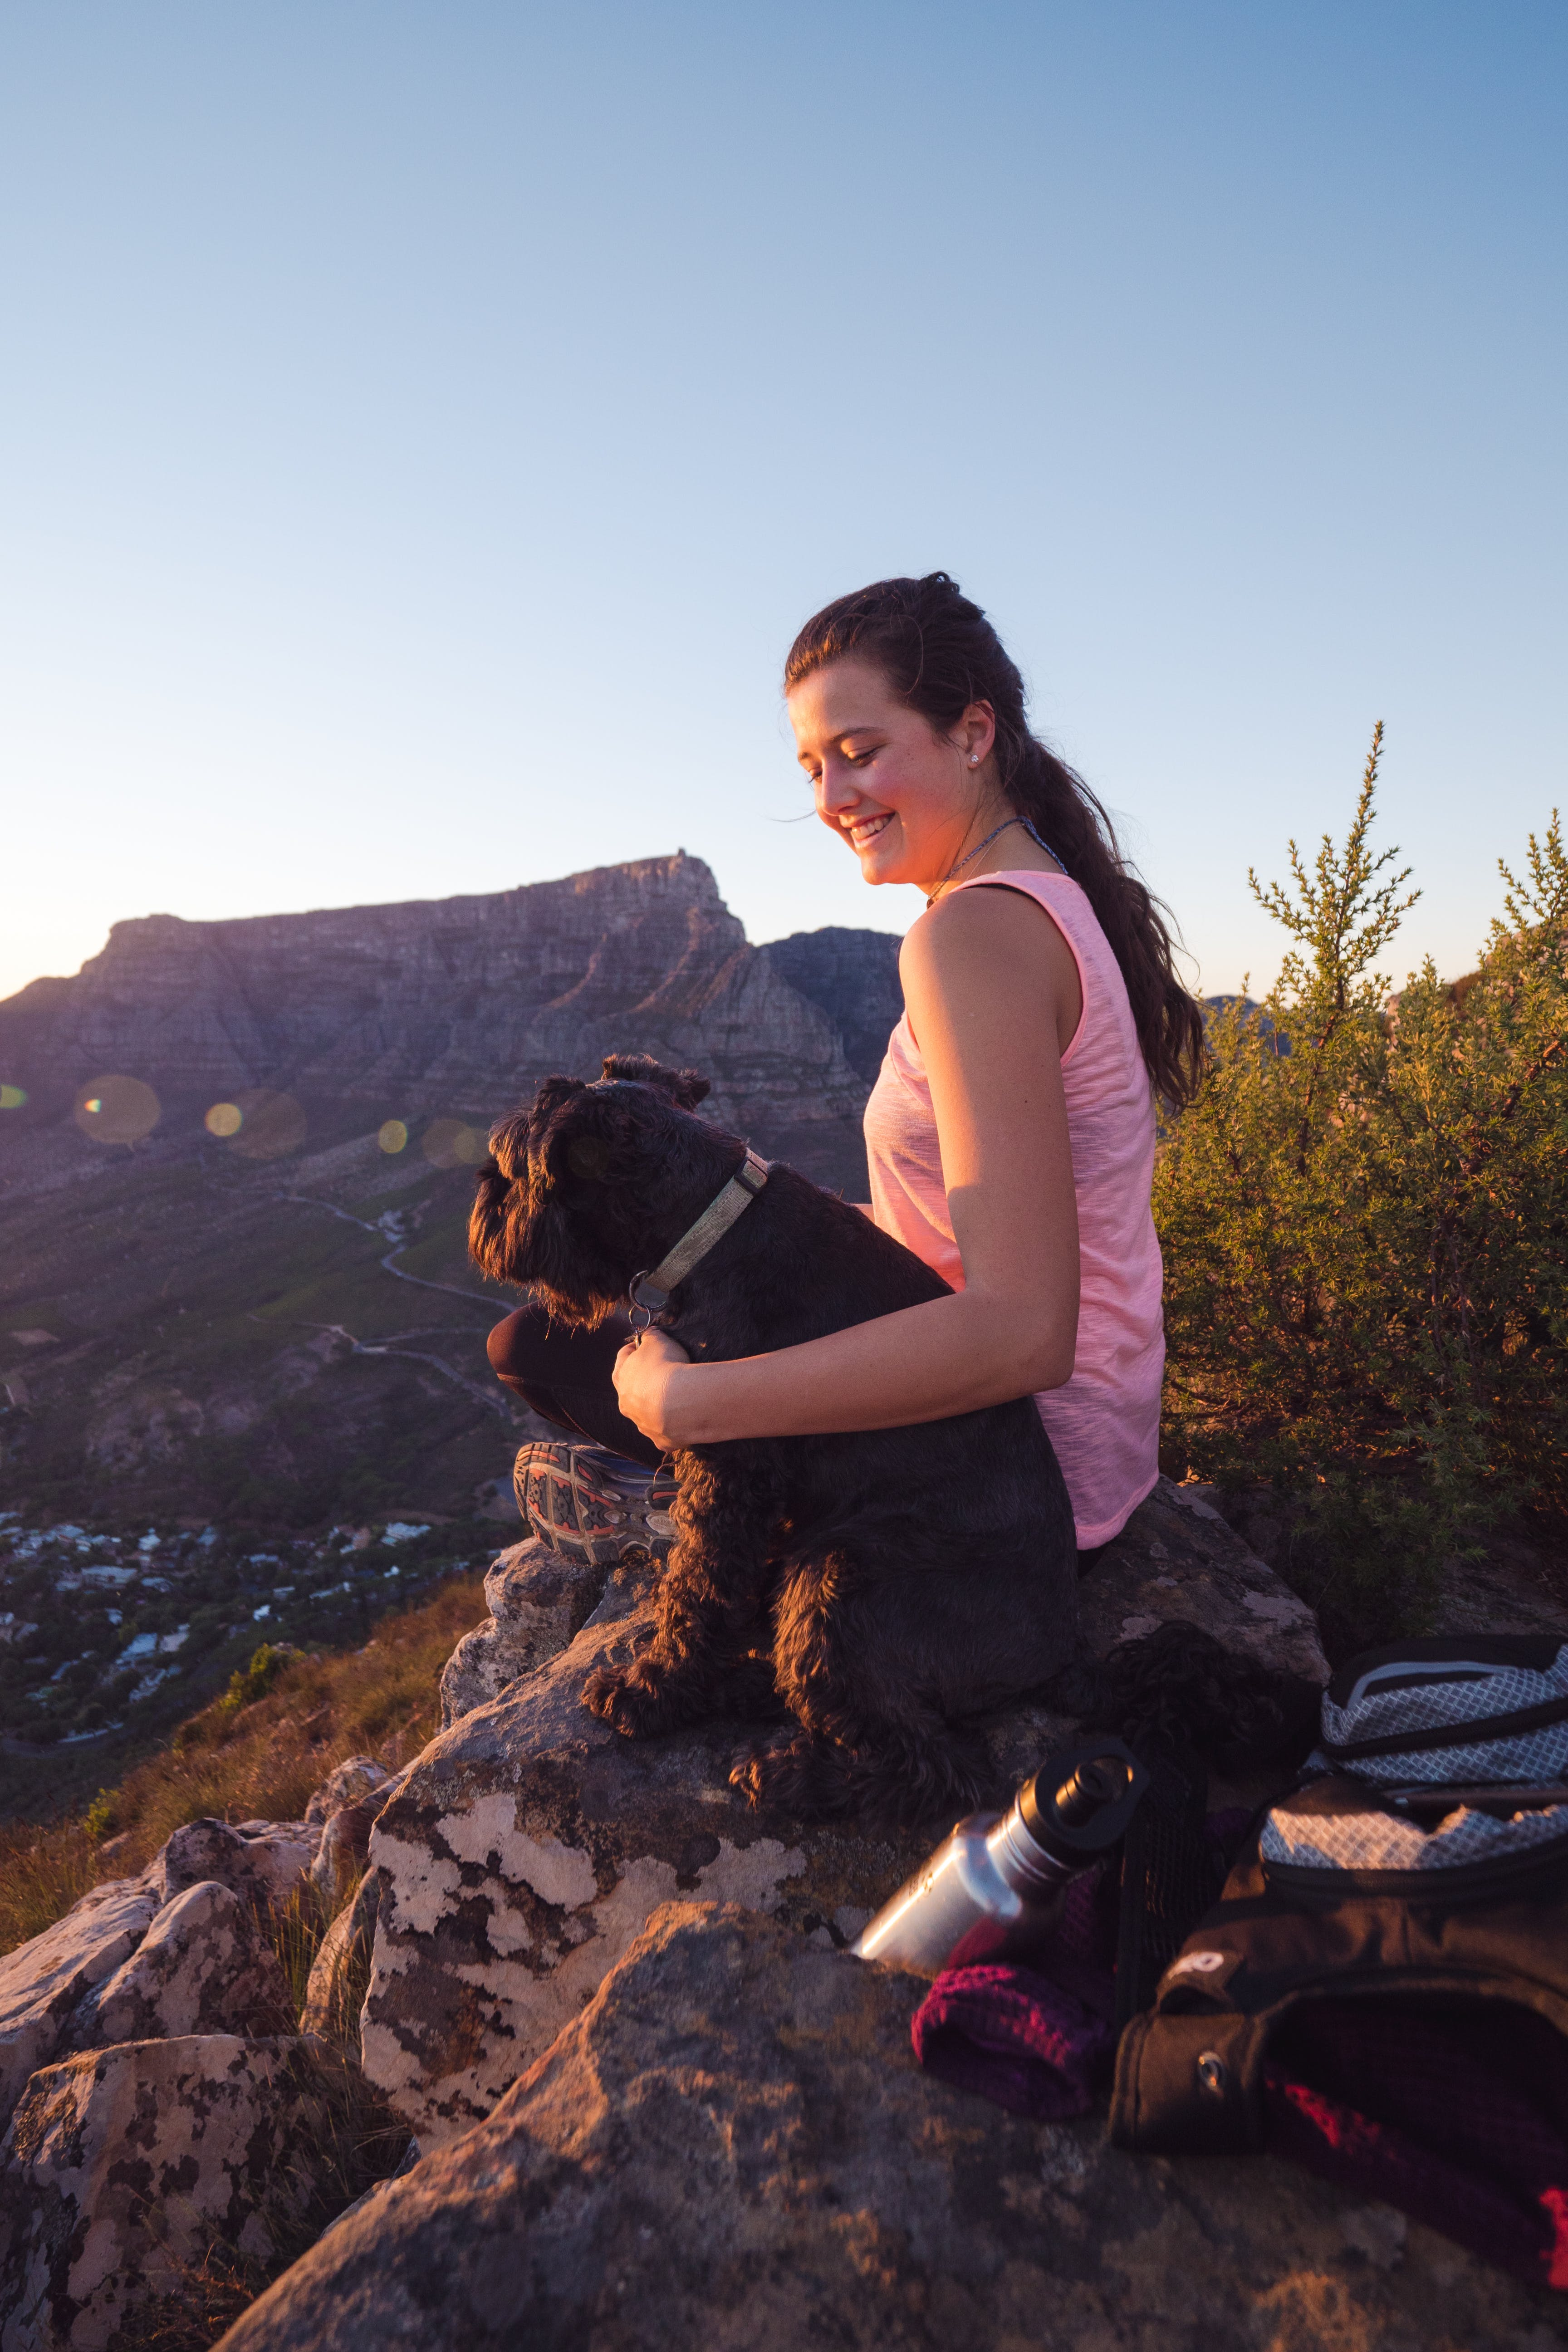 Woman Wearing Pink Tank Top Sitting on Rock Beside Dog